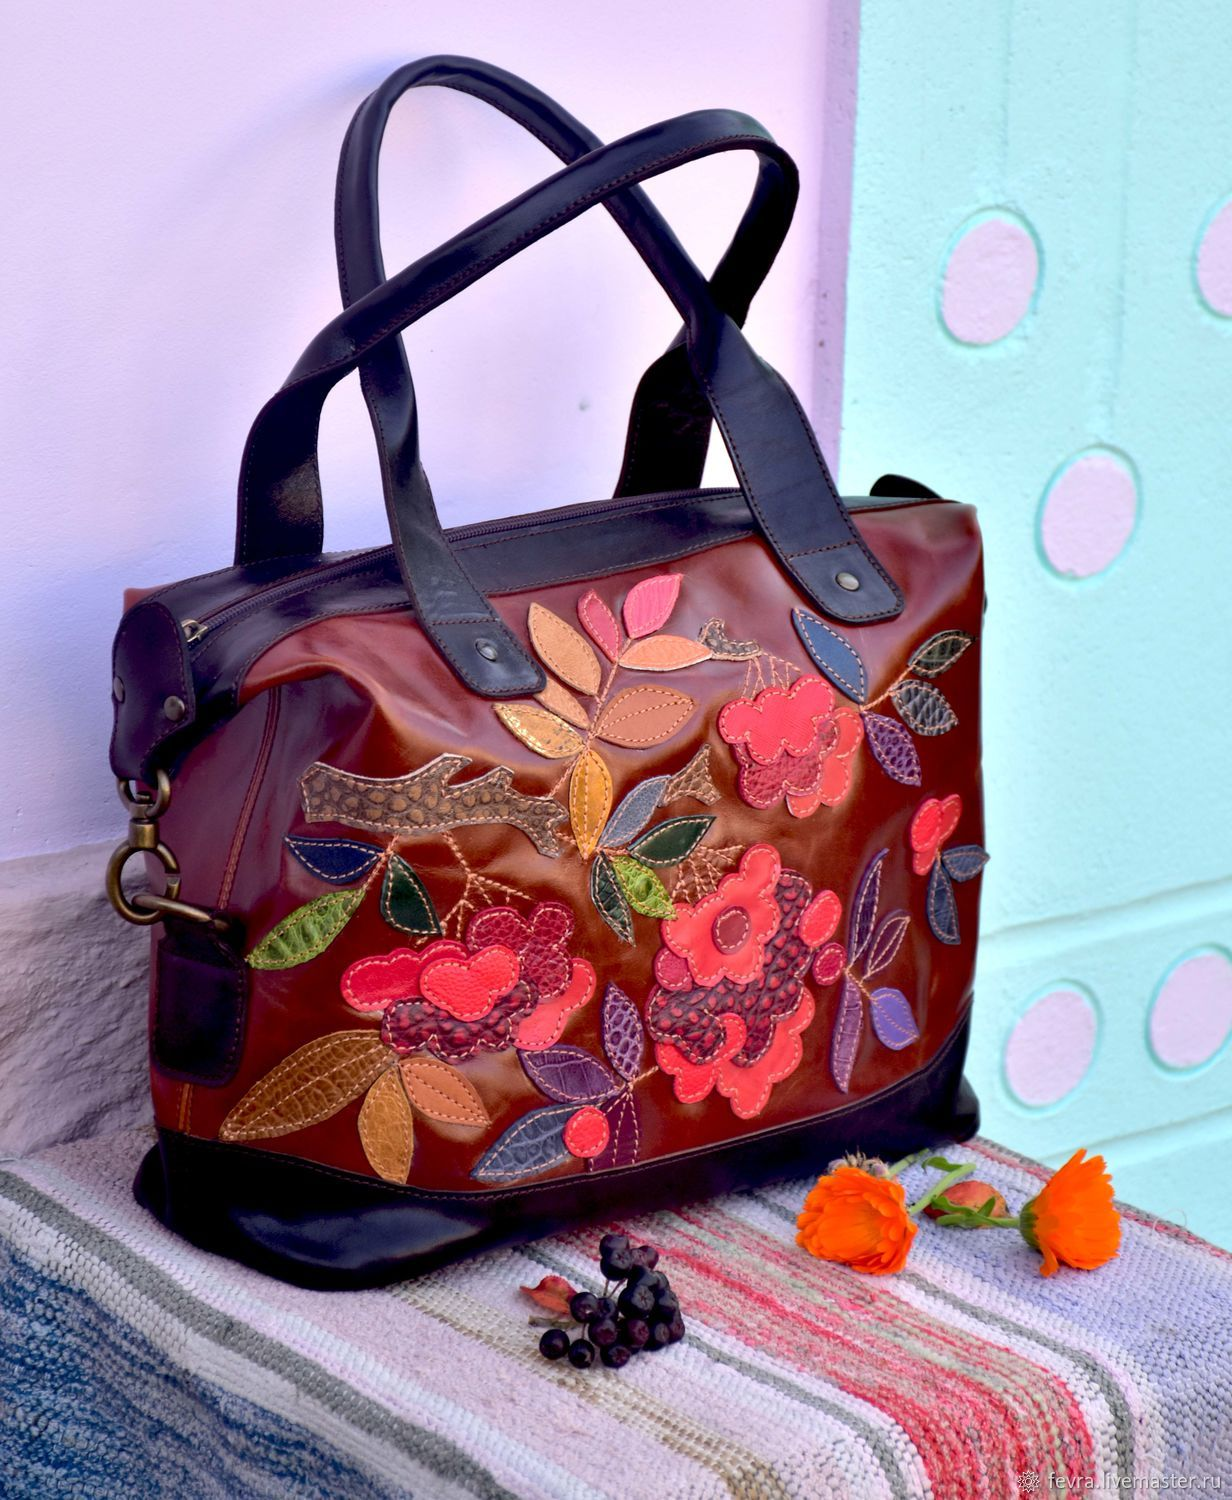 For two weeks -20% share! This bag is in finished works, it is a rarity from me! I did it with pleasure, and are ready to share the joy of the coming of autumn.